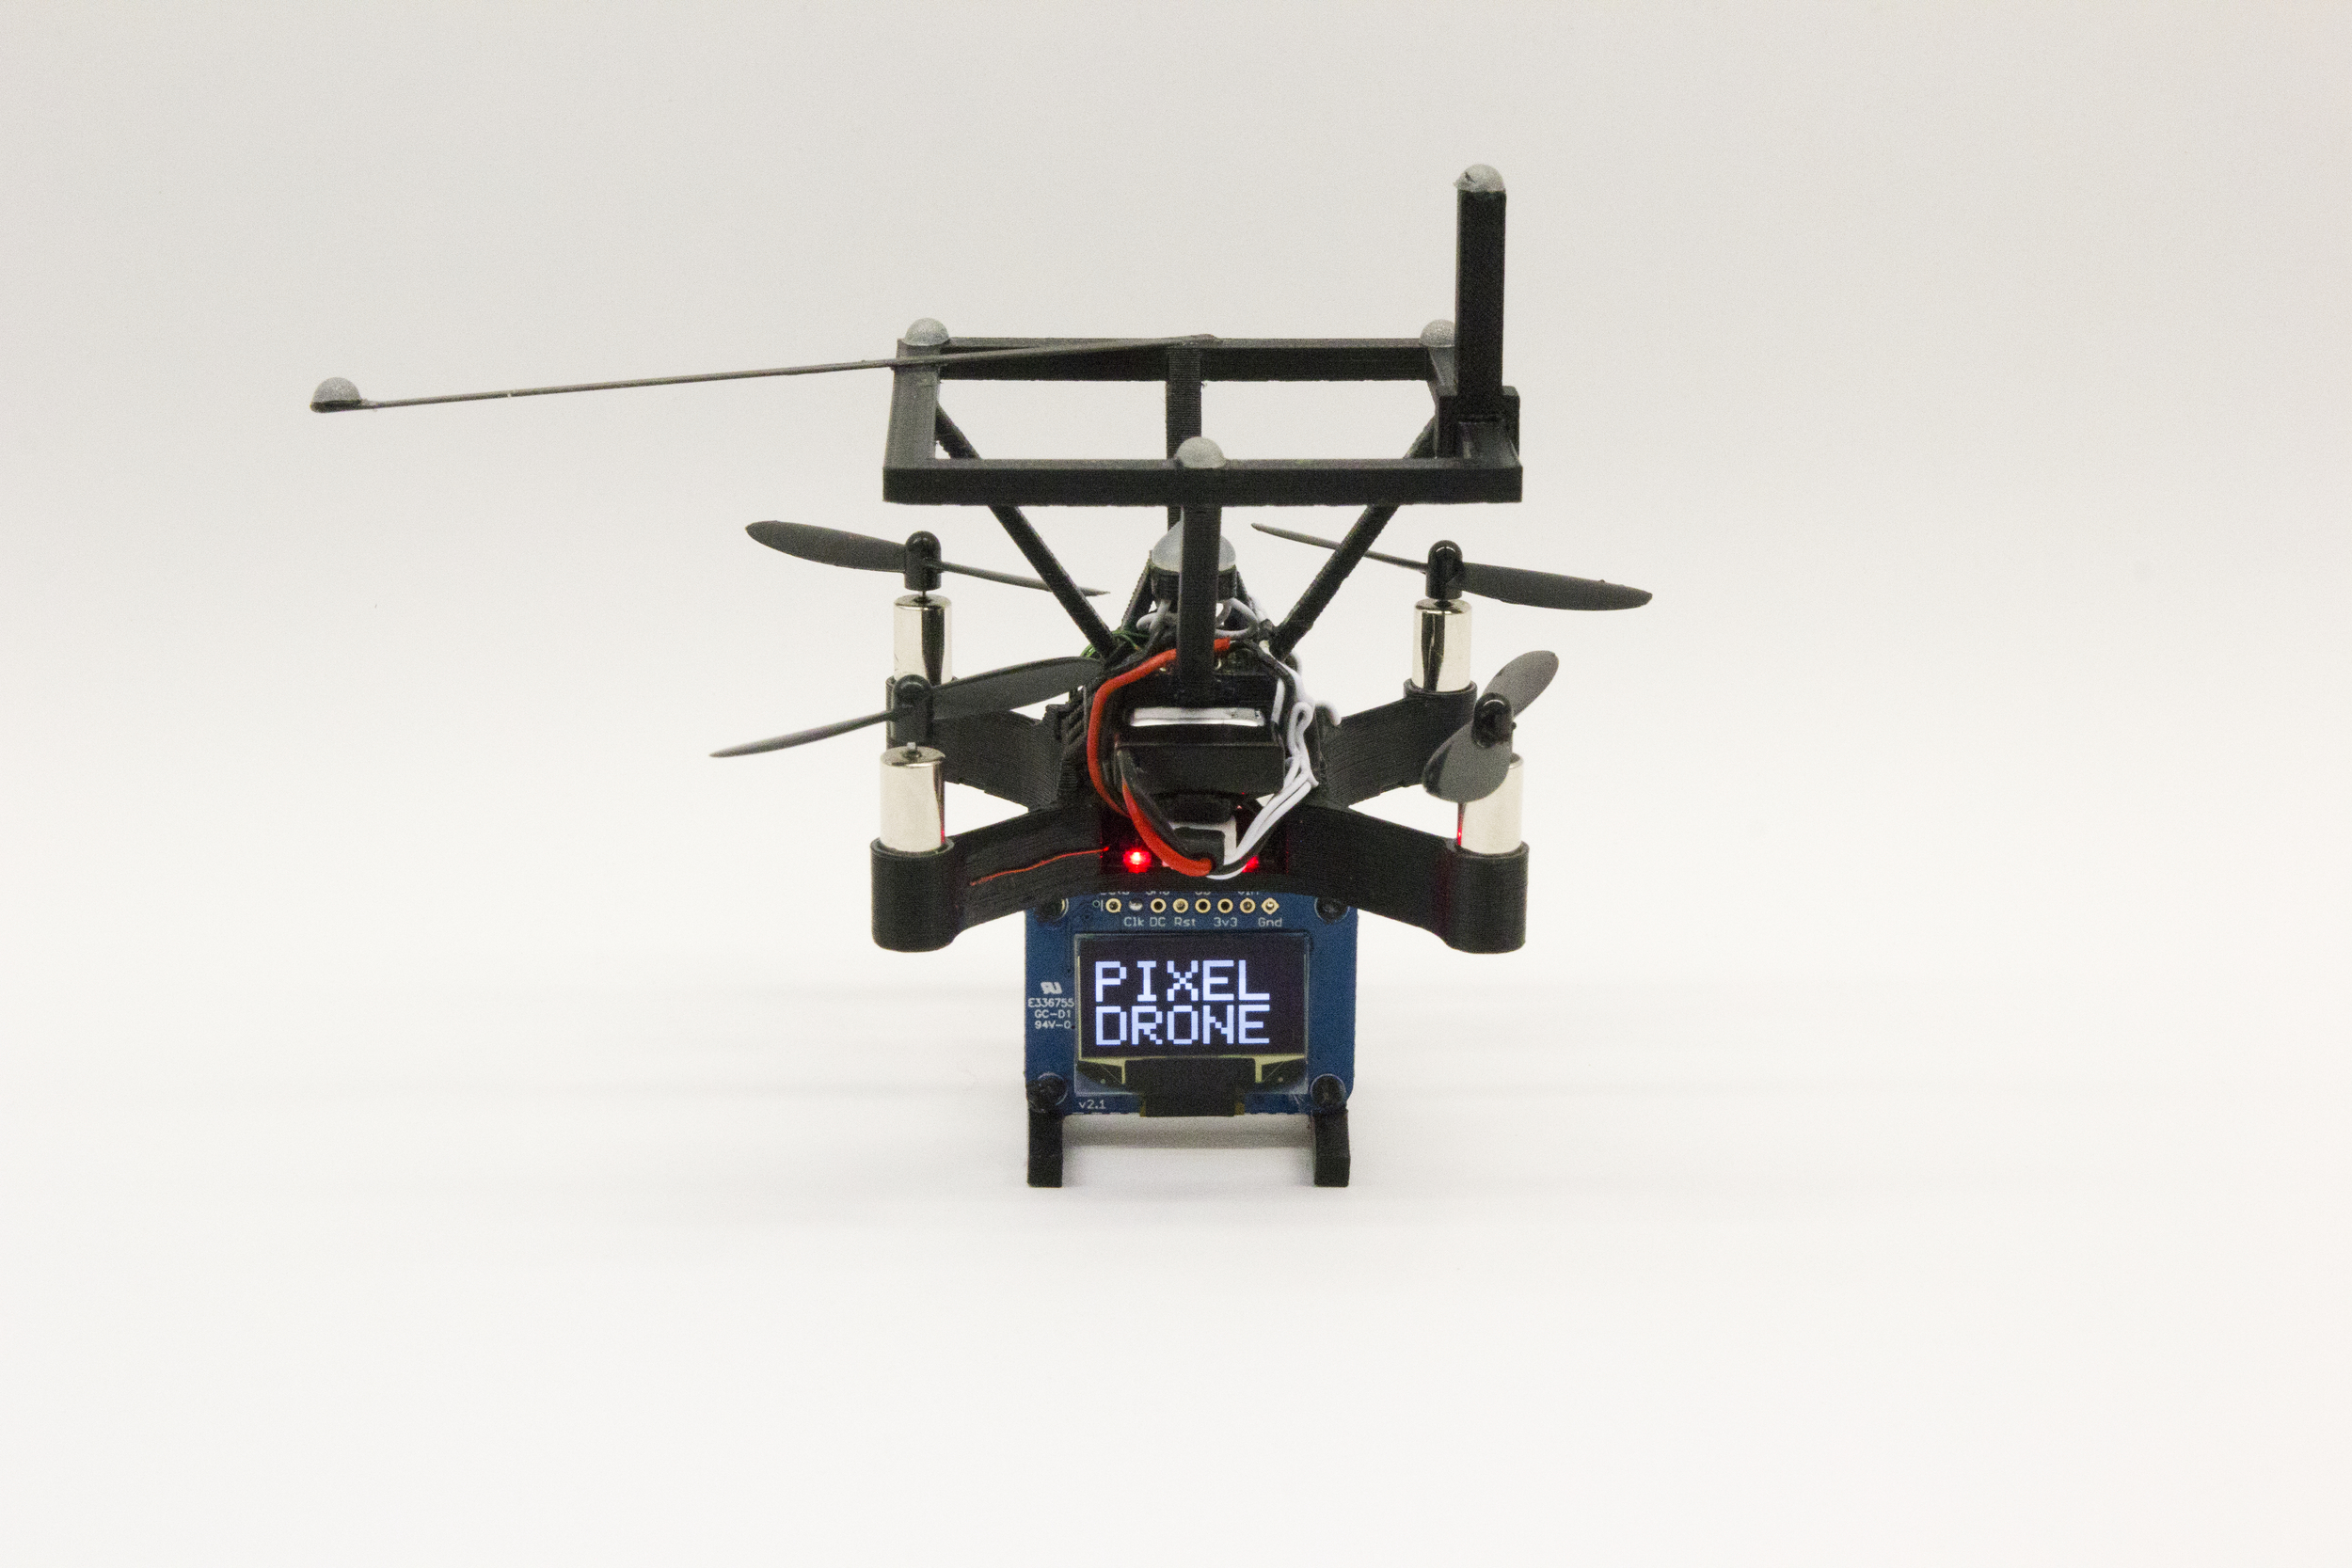 BitDrones (2015): PixelDrone with dot-matrix display.